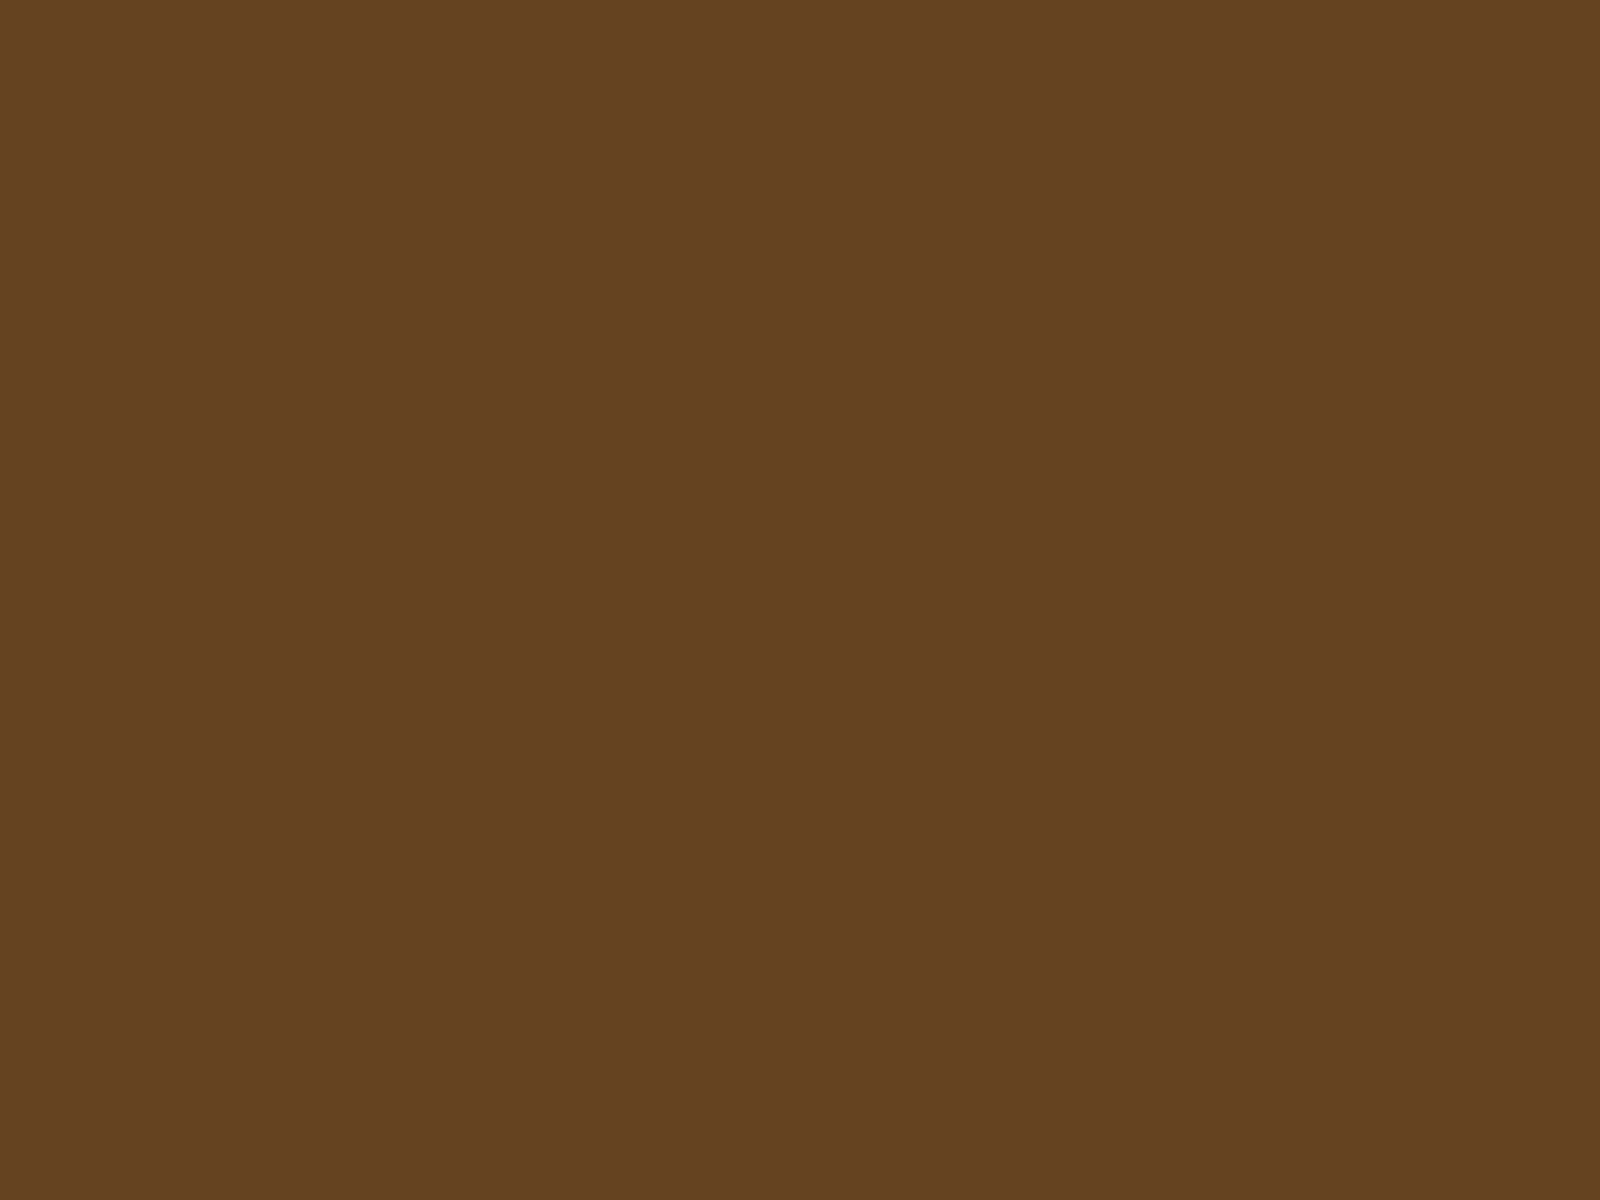 1600x1200 Otter Brown Solid Color Background